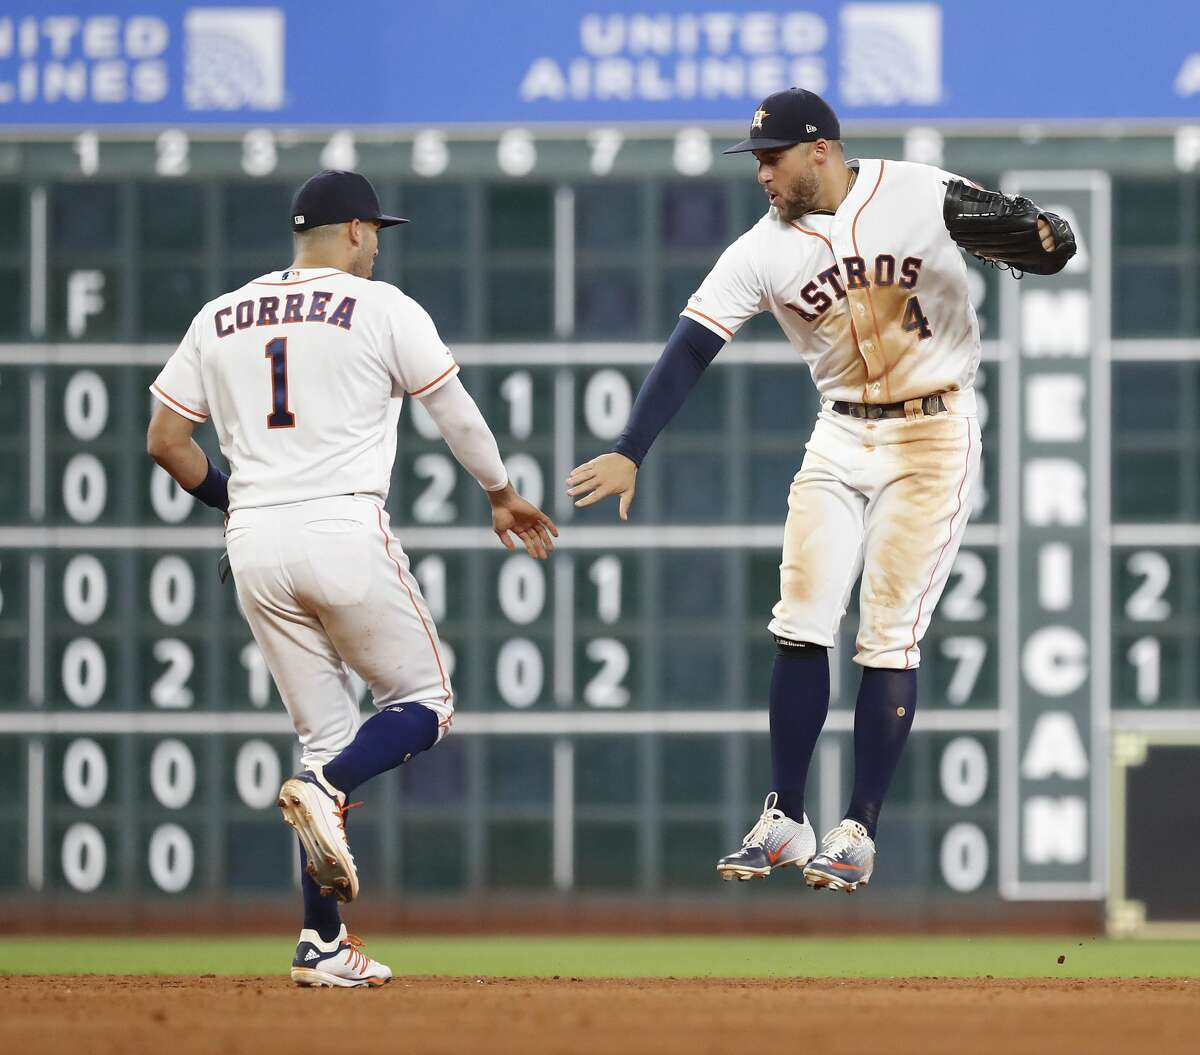 Houston Astros center fielder George Springer (4) and shortstop Carlos Correa (1) celebrate after the Astro beat the Colorado Rockies 11-6 after an MLB baseball game at Minute Maid Park, Tuesday, August 6, 2019.